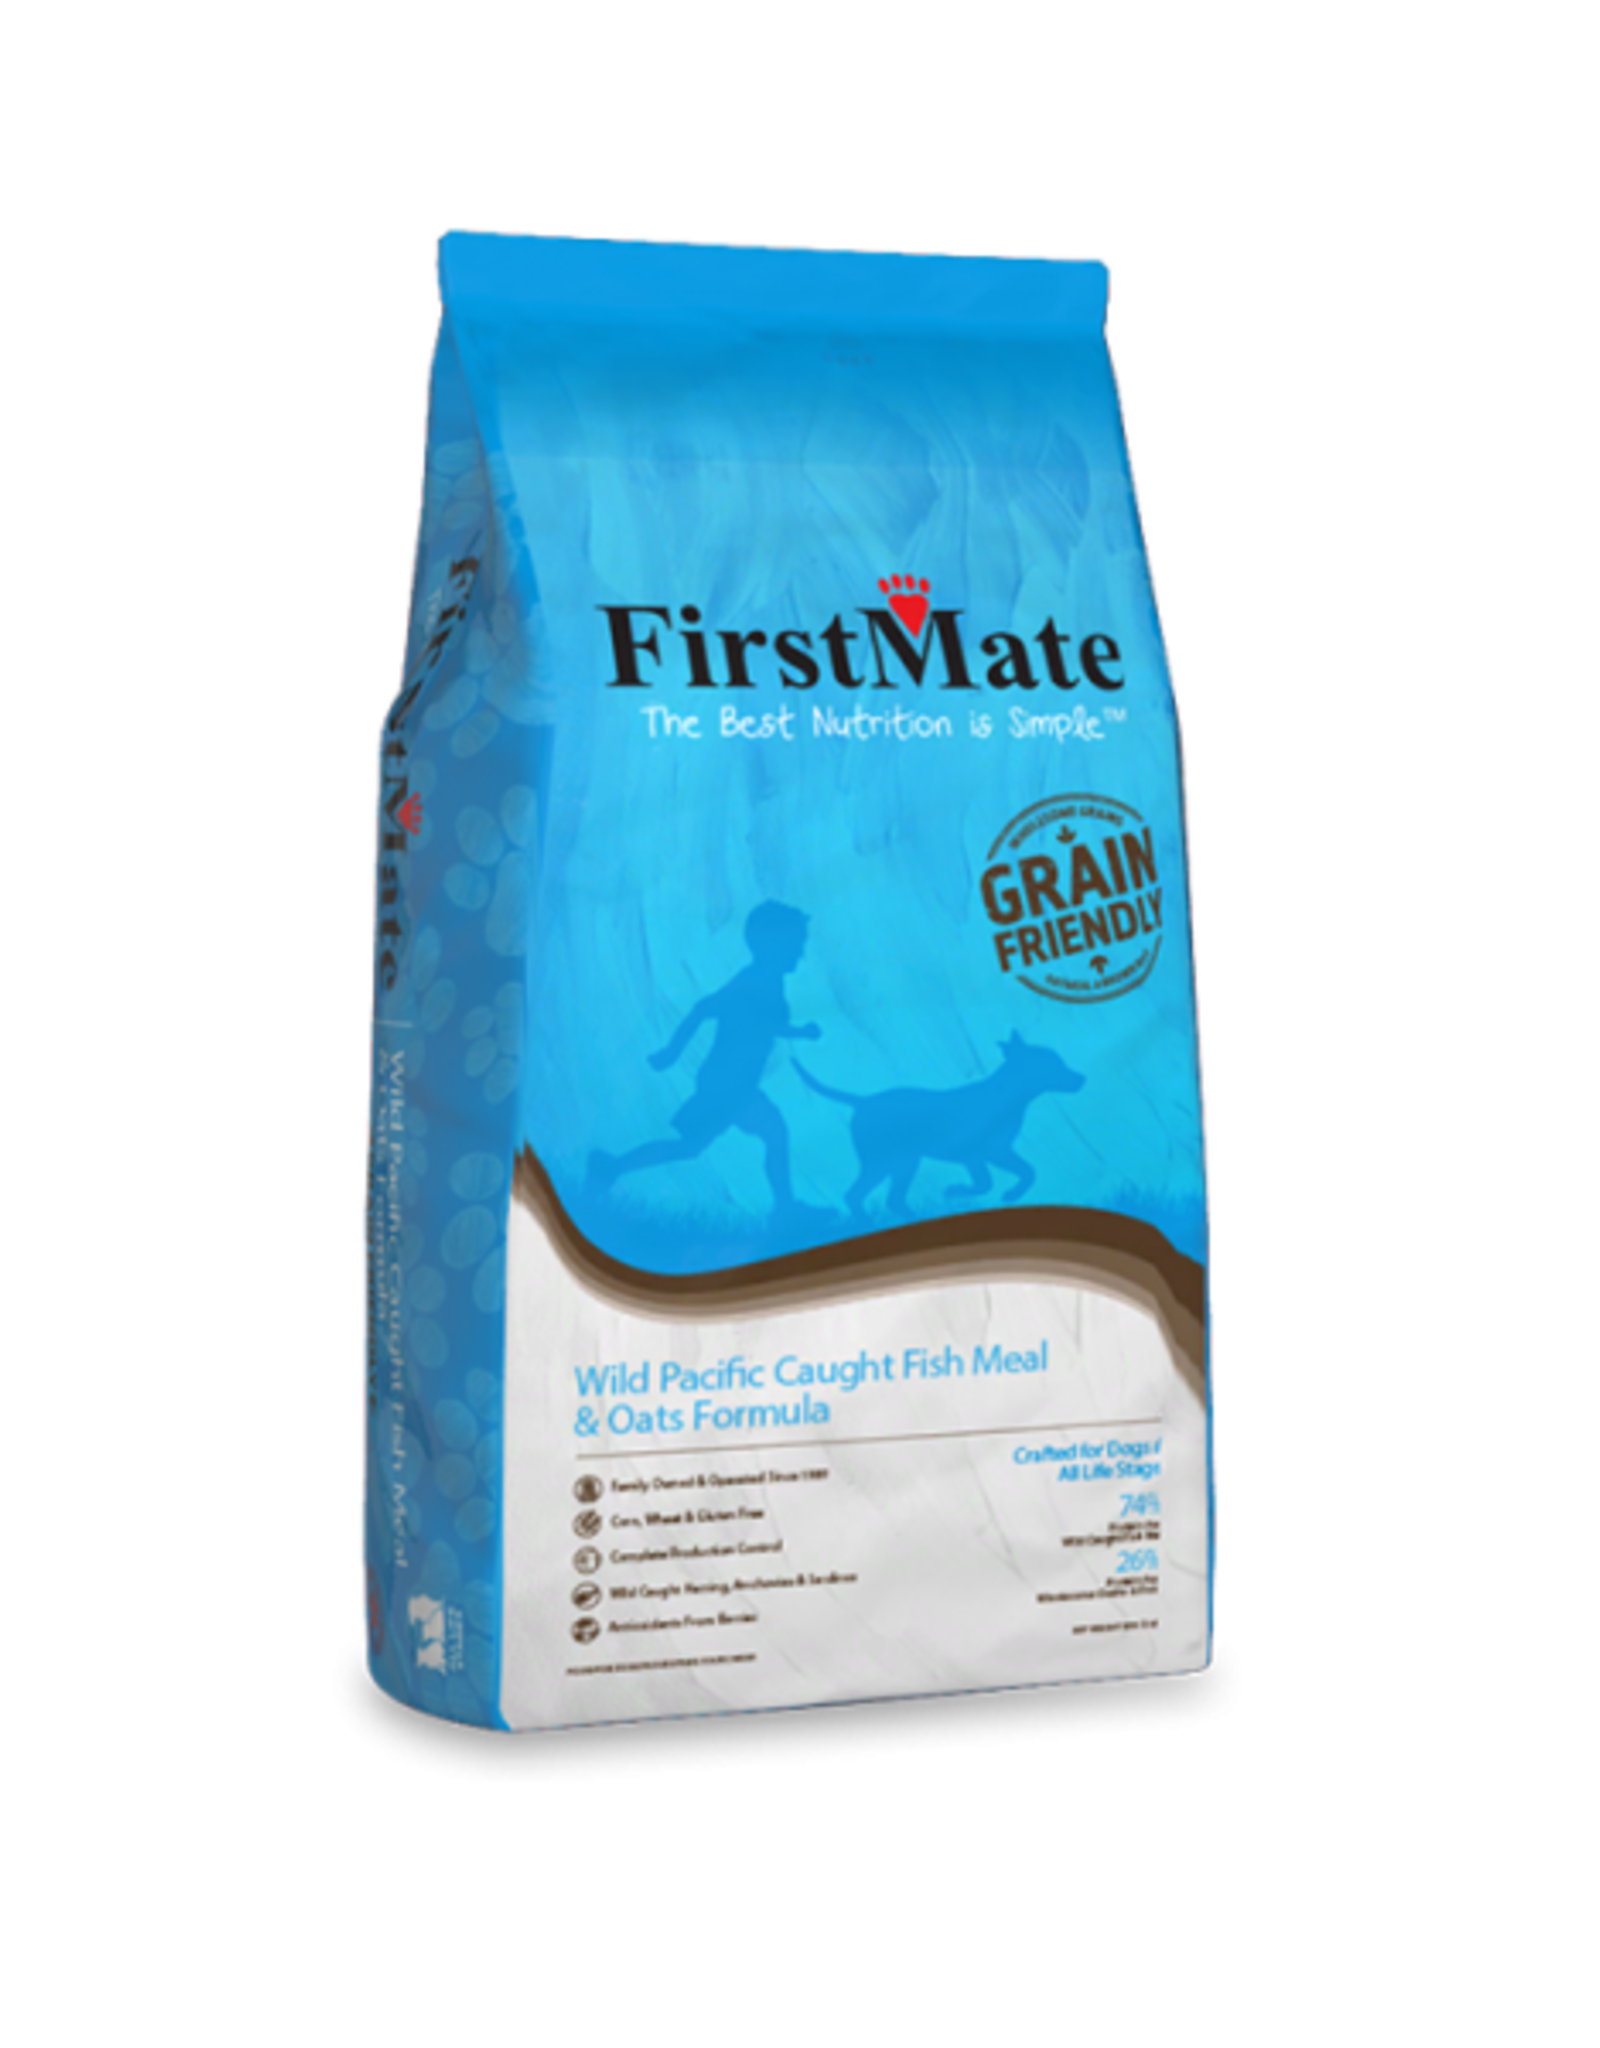 FirstMate Pet Food Wild Pacific Caught Fish & Oats Recipe